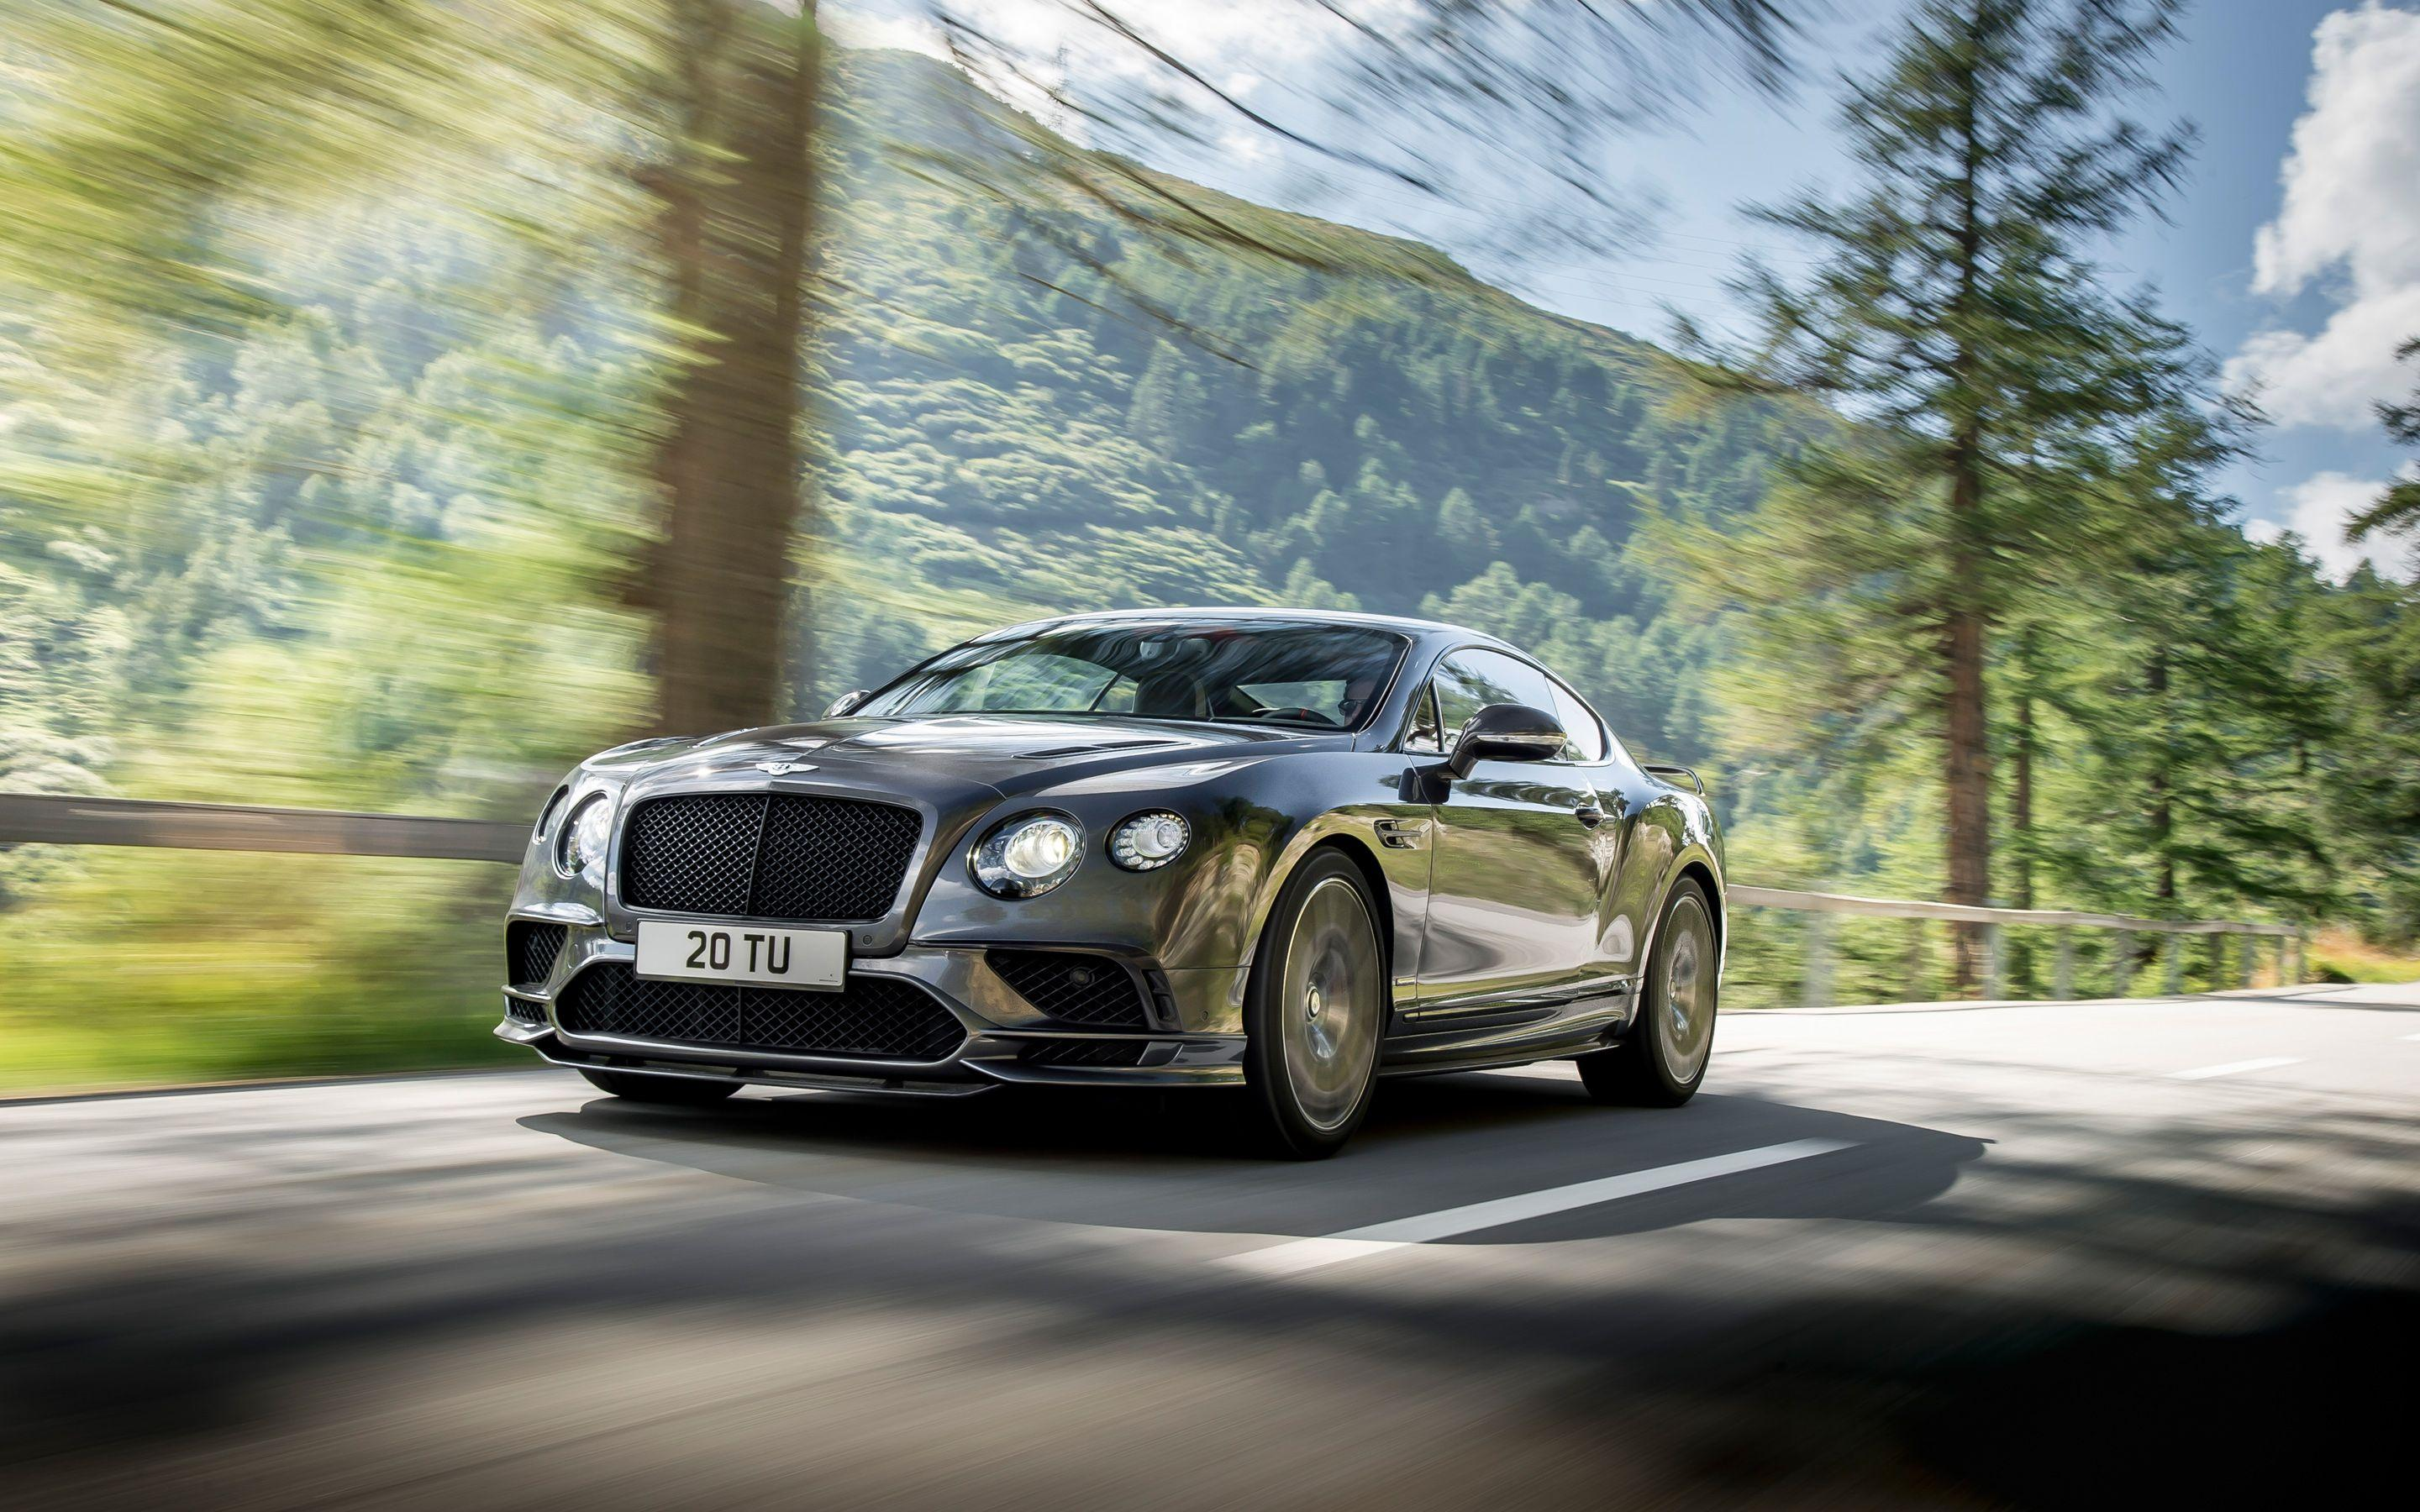 bentley continental gt wallpapers - wallpaper cave